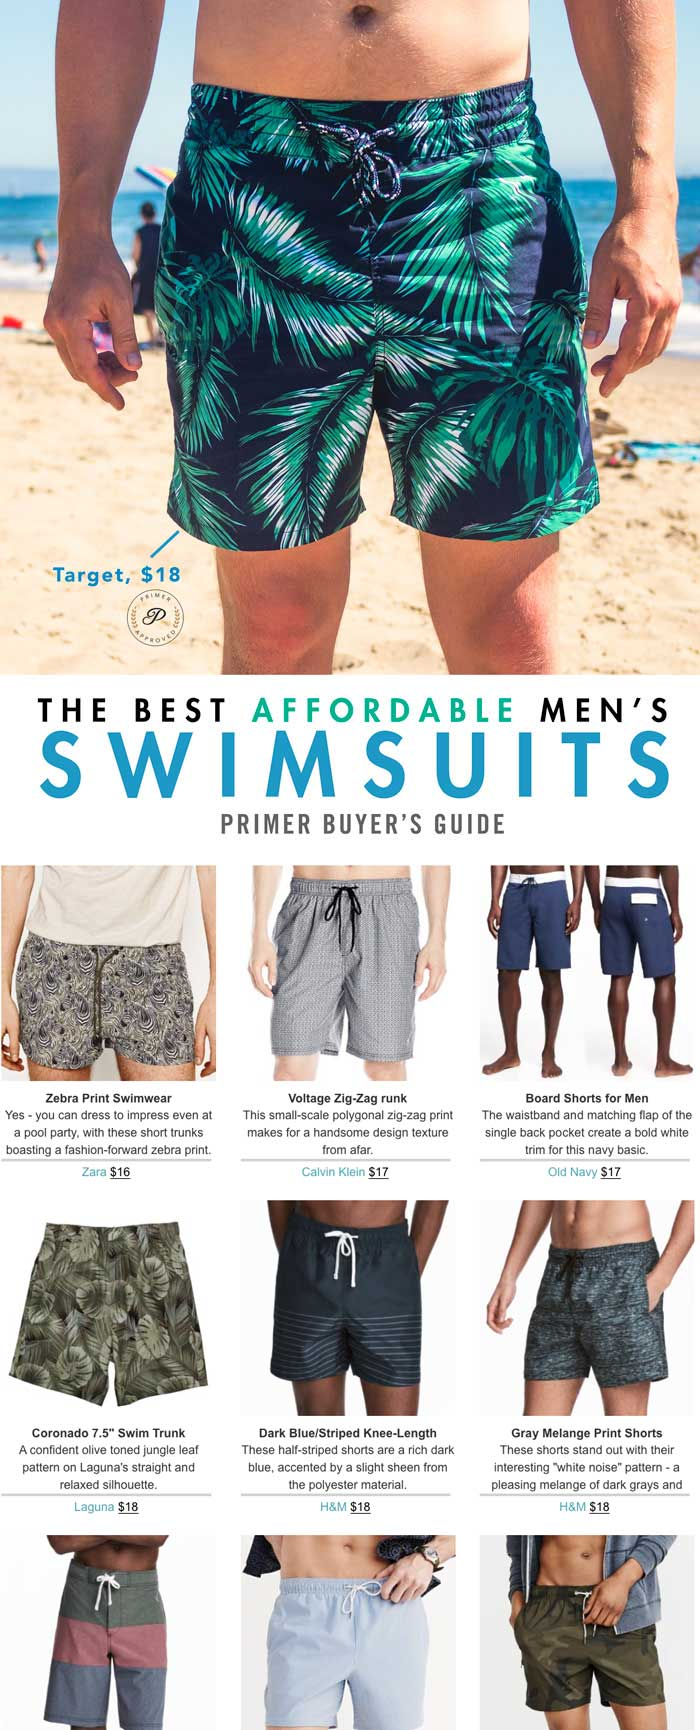 a3bff0f580 The Best Affordable Men's Swim Trunks | Primer